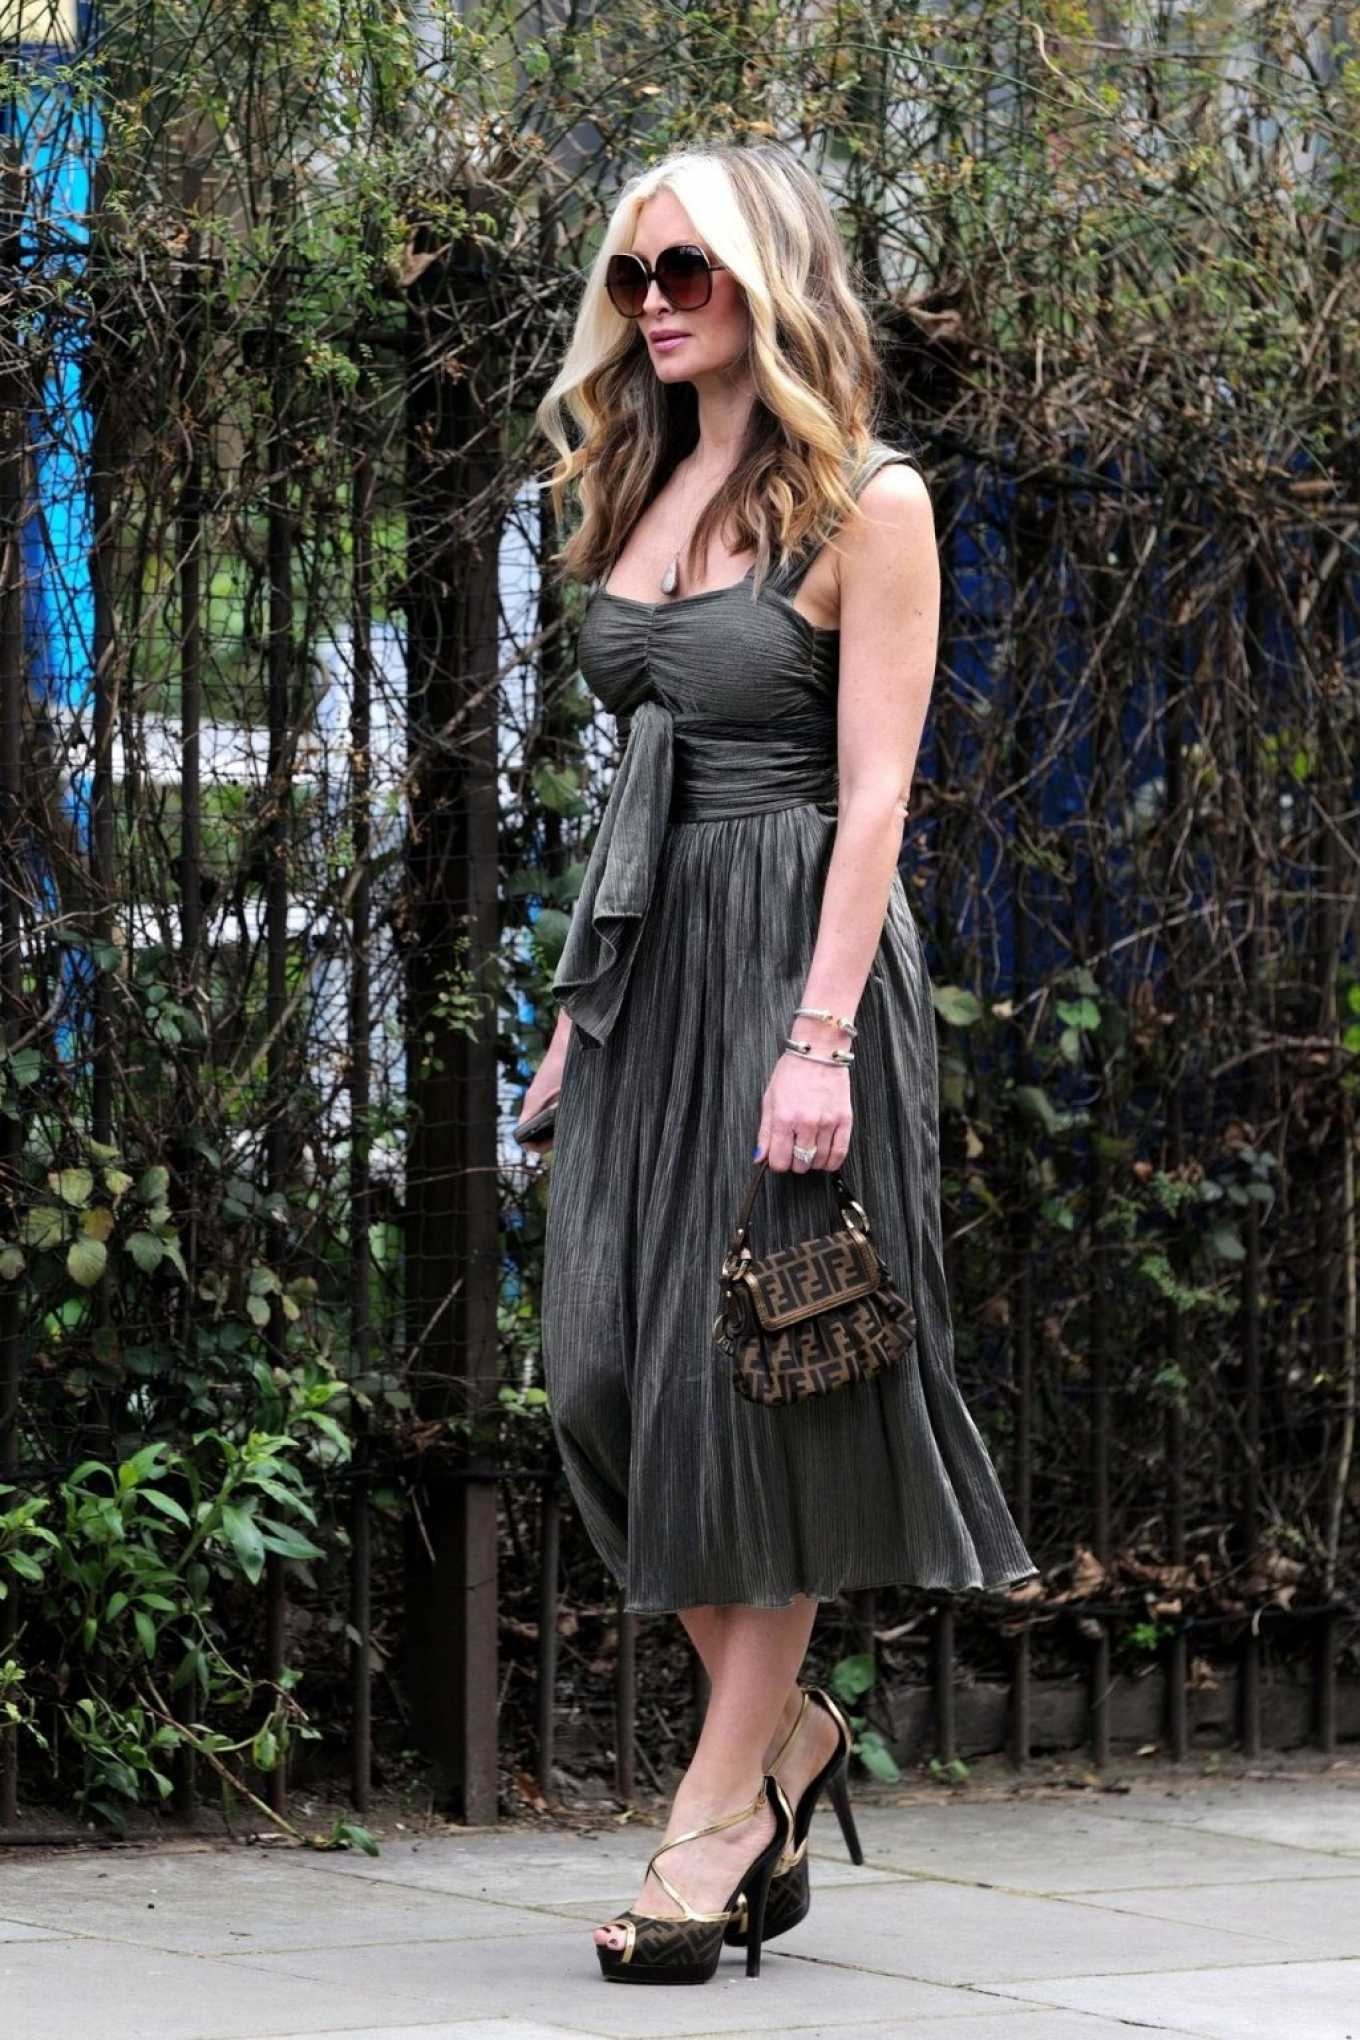 Caprice Bourret 2020 : Caprice Bourret – Out in London-01